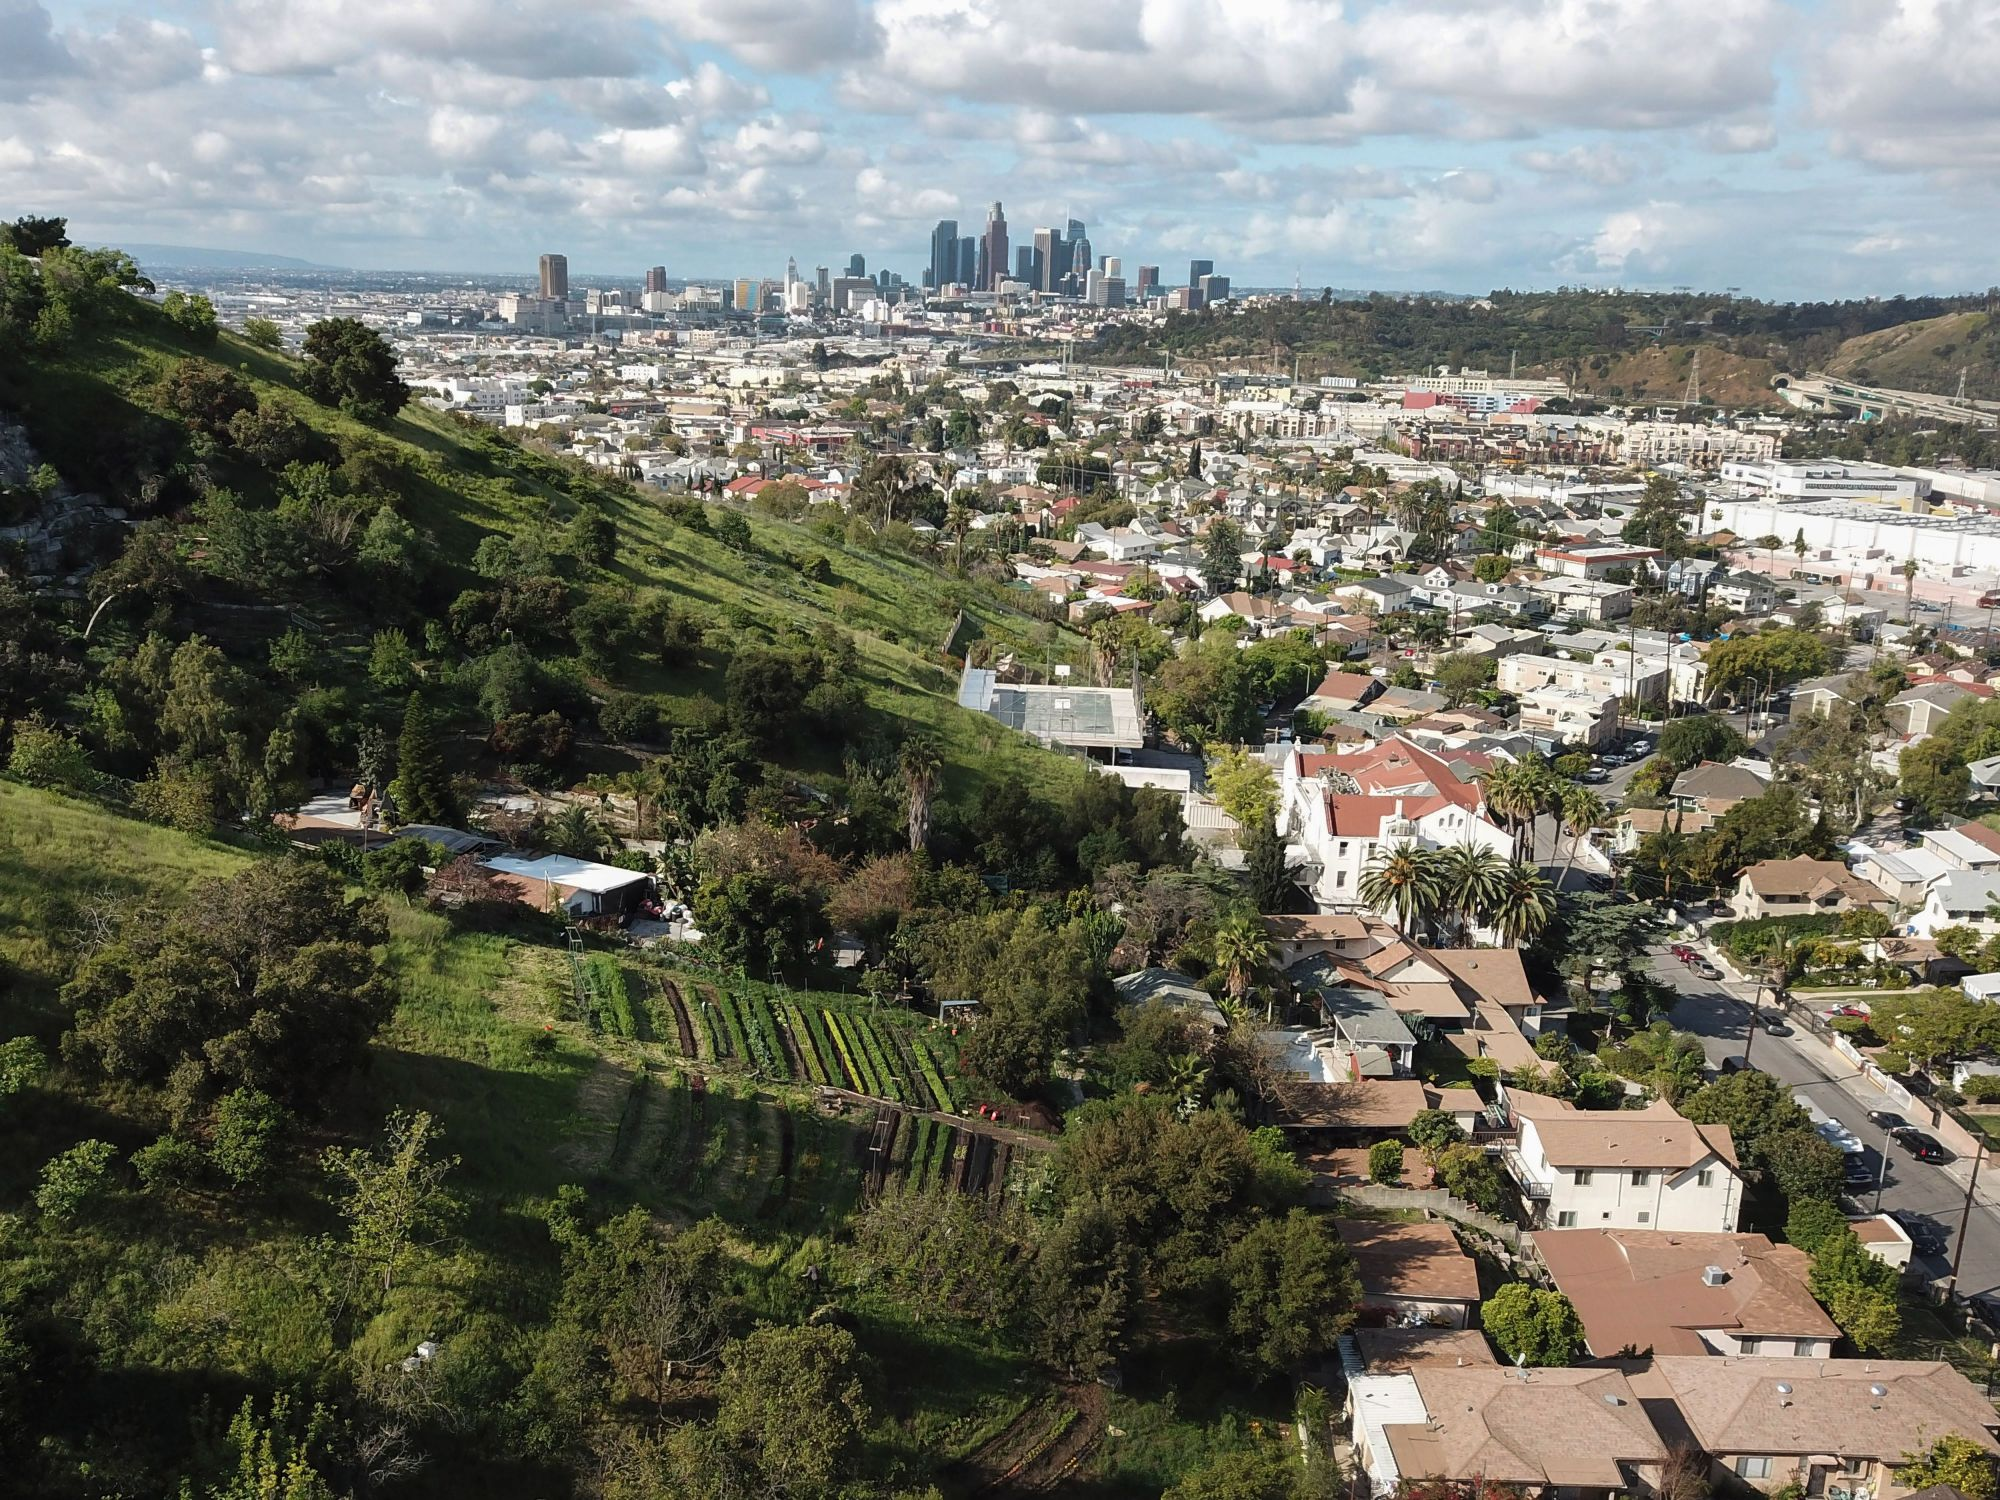 """An aerial view of the small urban farm """"Avenue 33 Farm"""" with the Los Angeles skyline in the background on March 25, 2020. (ROBYN BECK/AFP via Getty Images)"""